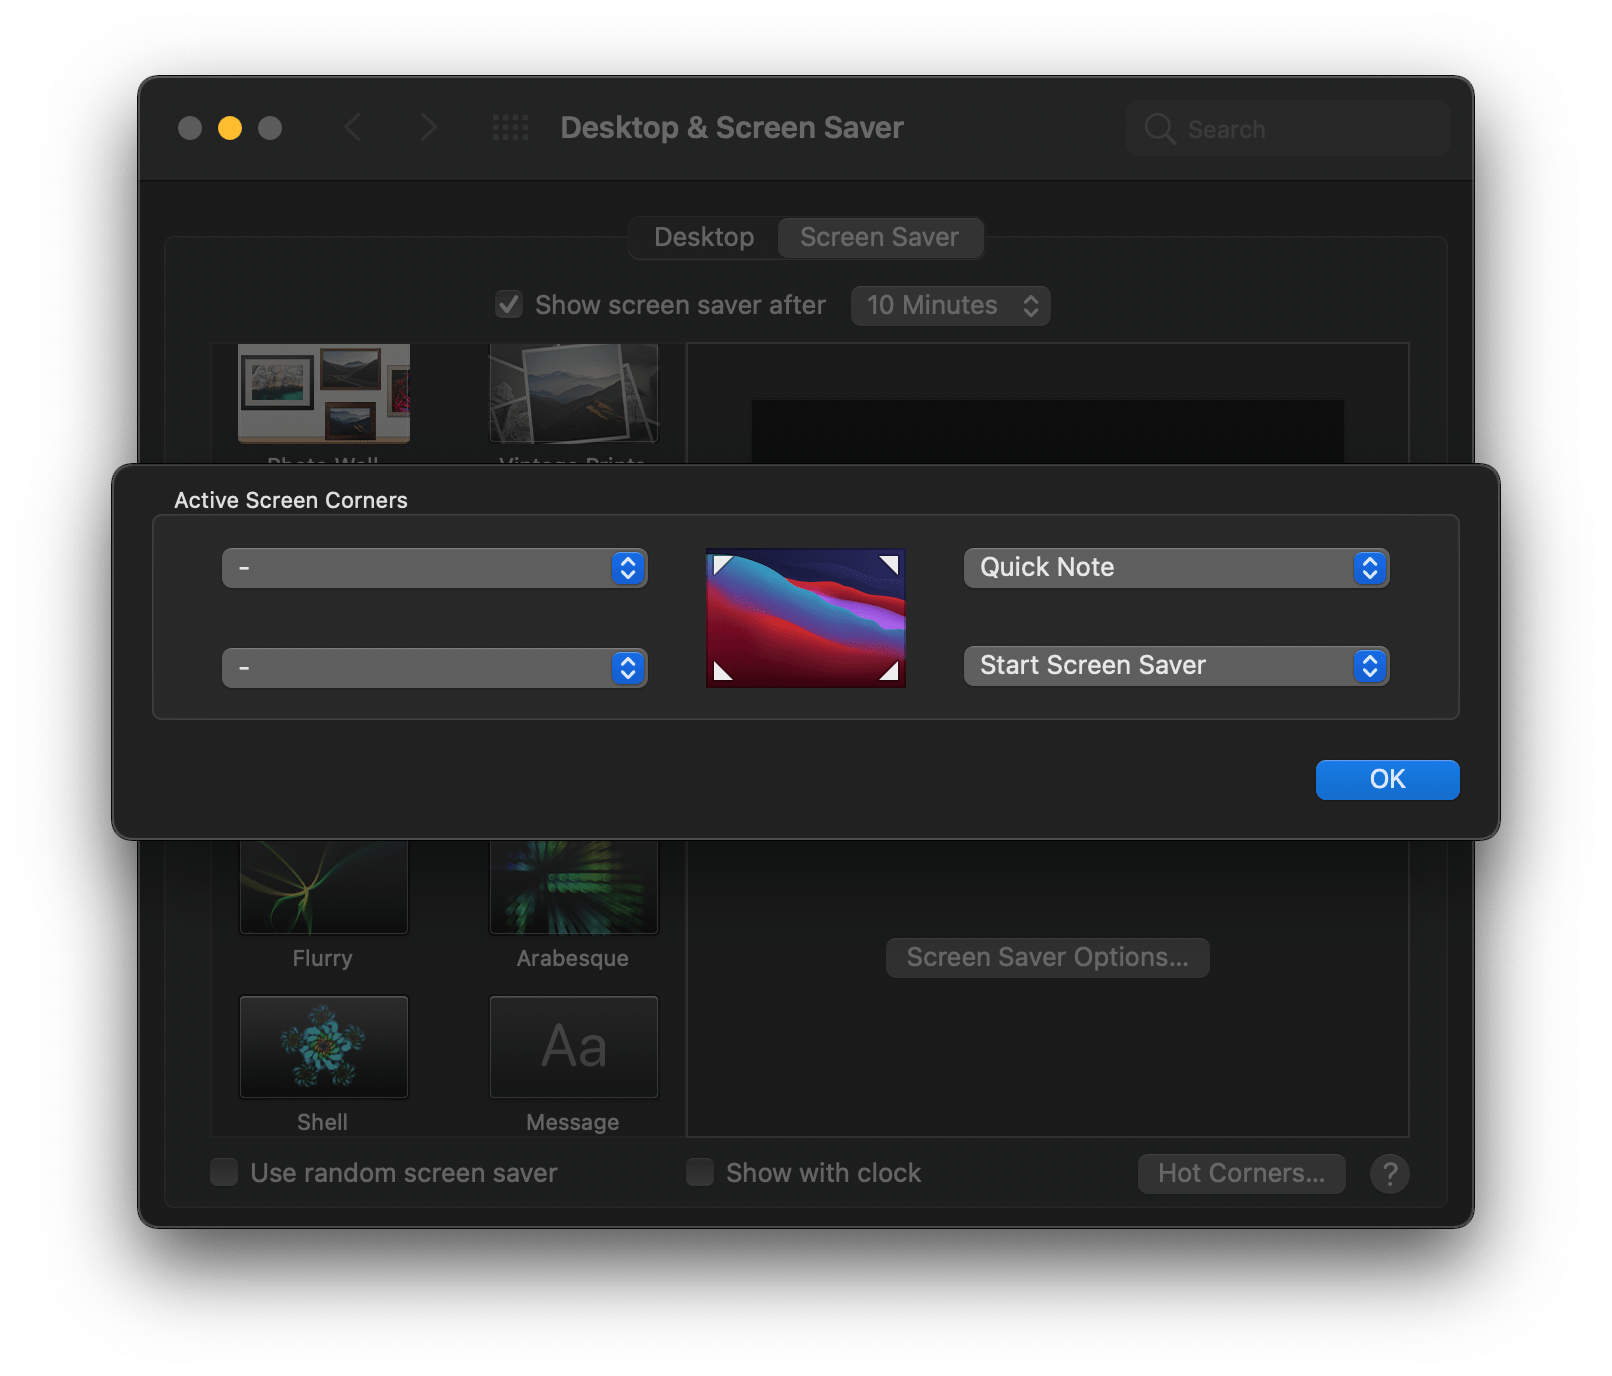 Quick Note can be assigned to Hot Corners on the Mac.